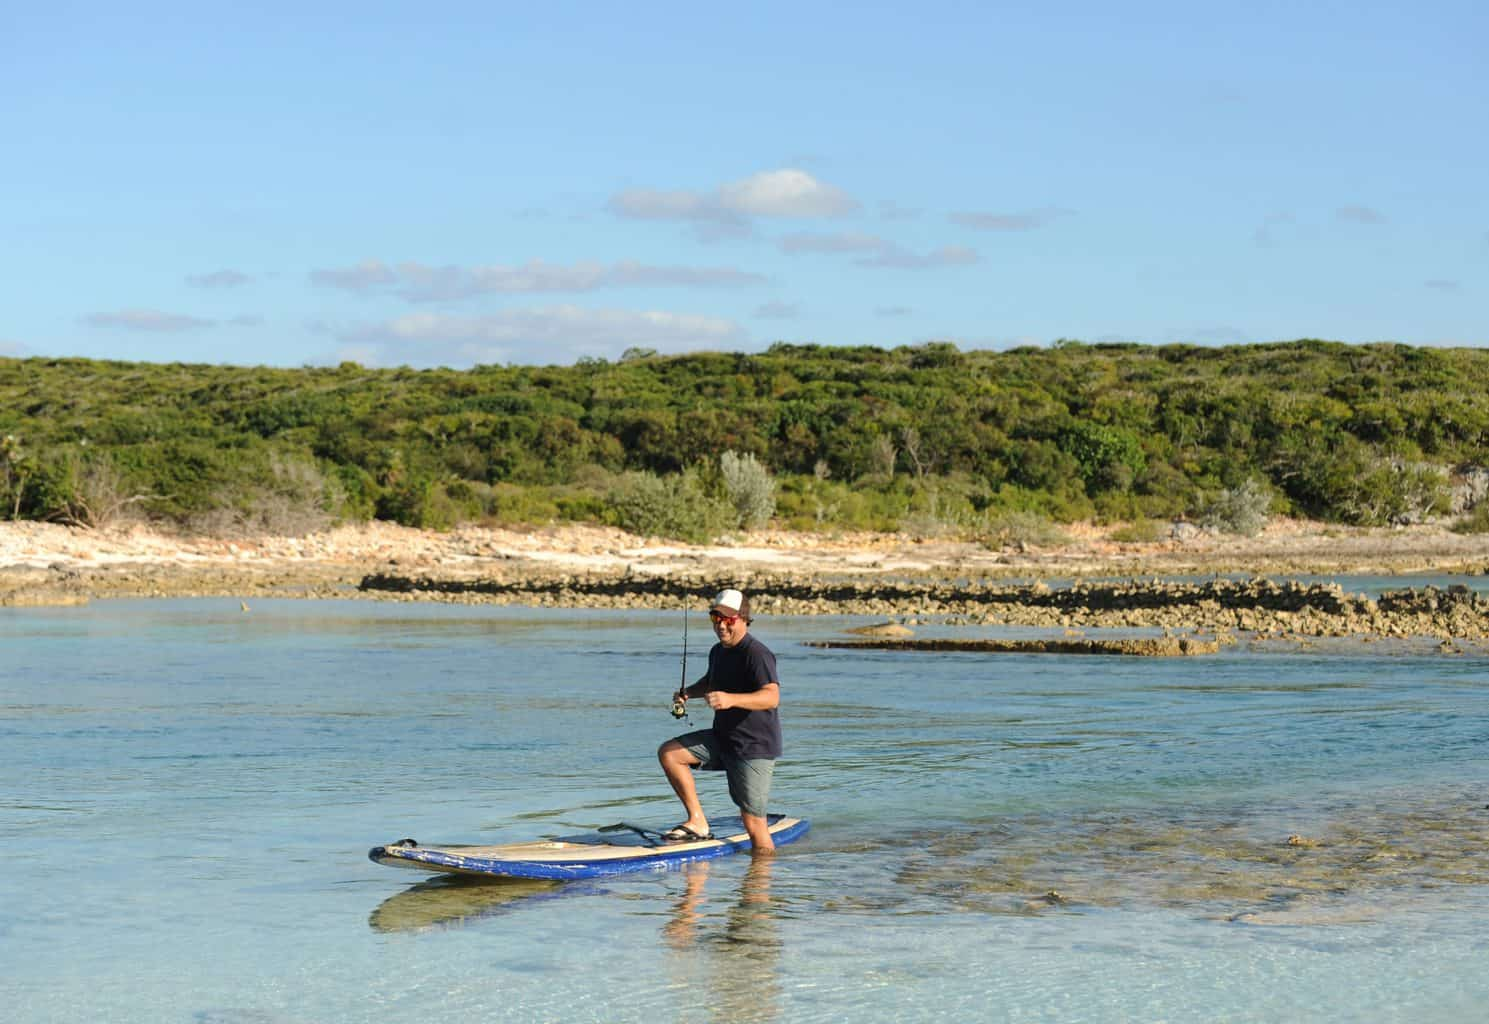 Man stepping off one of the best fishing paddle boards while fishing in scenic tropical destination